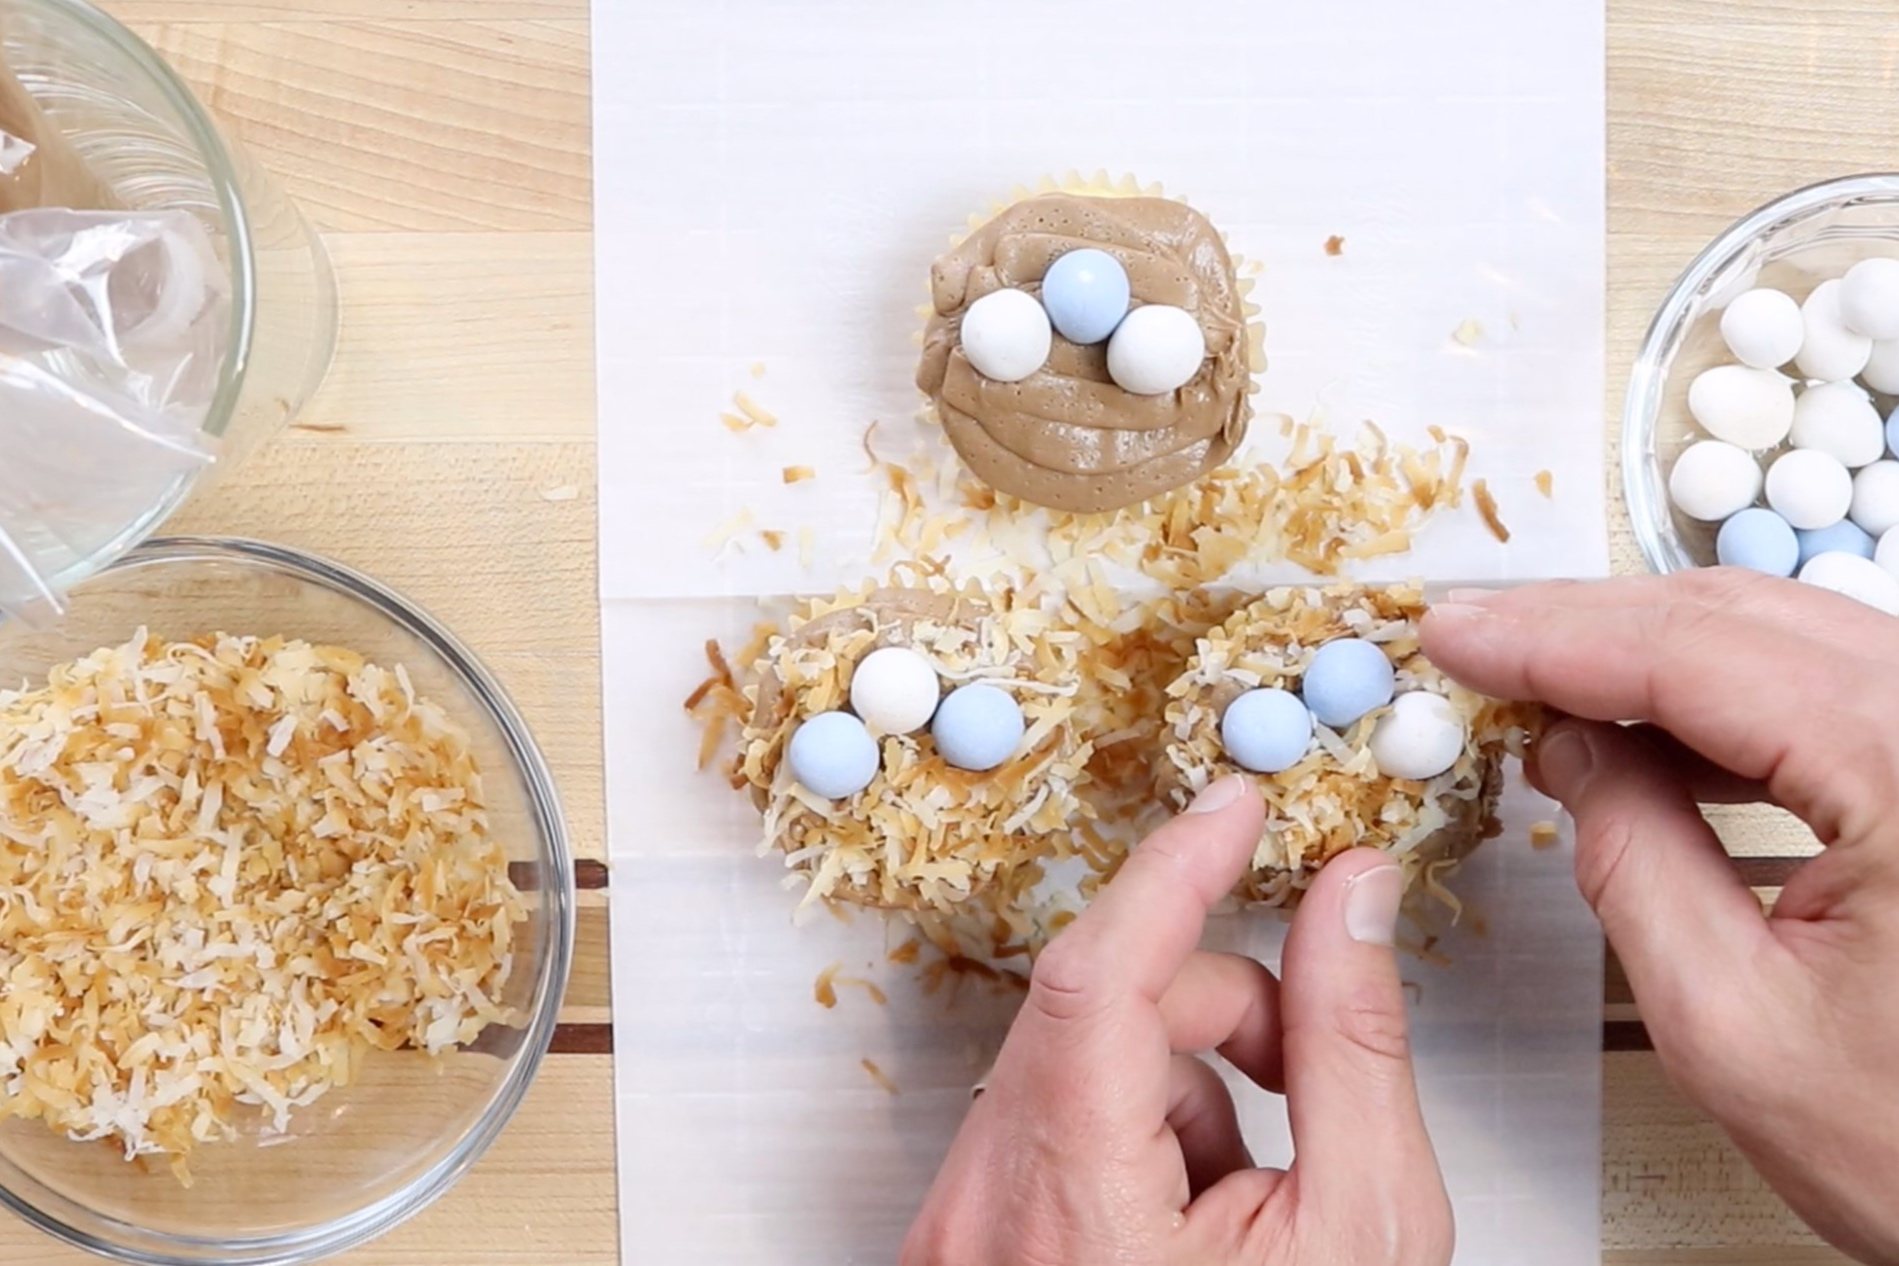 5. Sprinkle the toasted coconut around the cupcake filling in all the frosted area. -